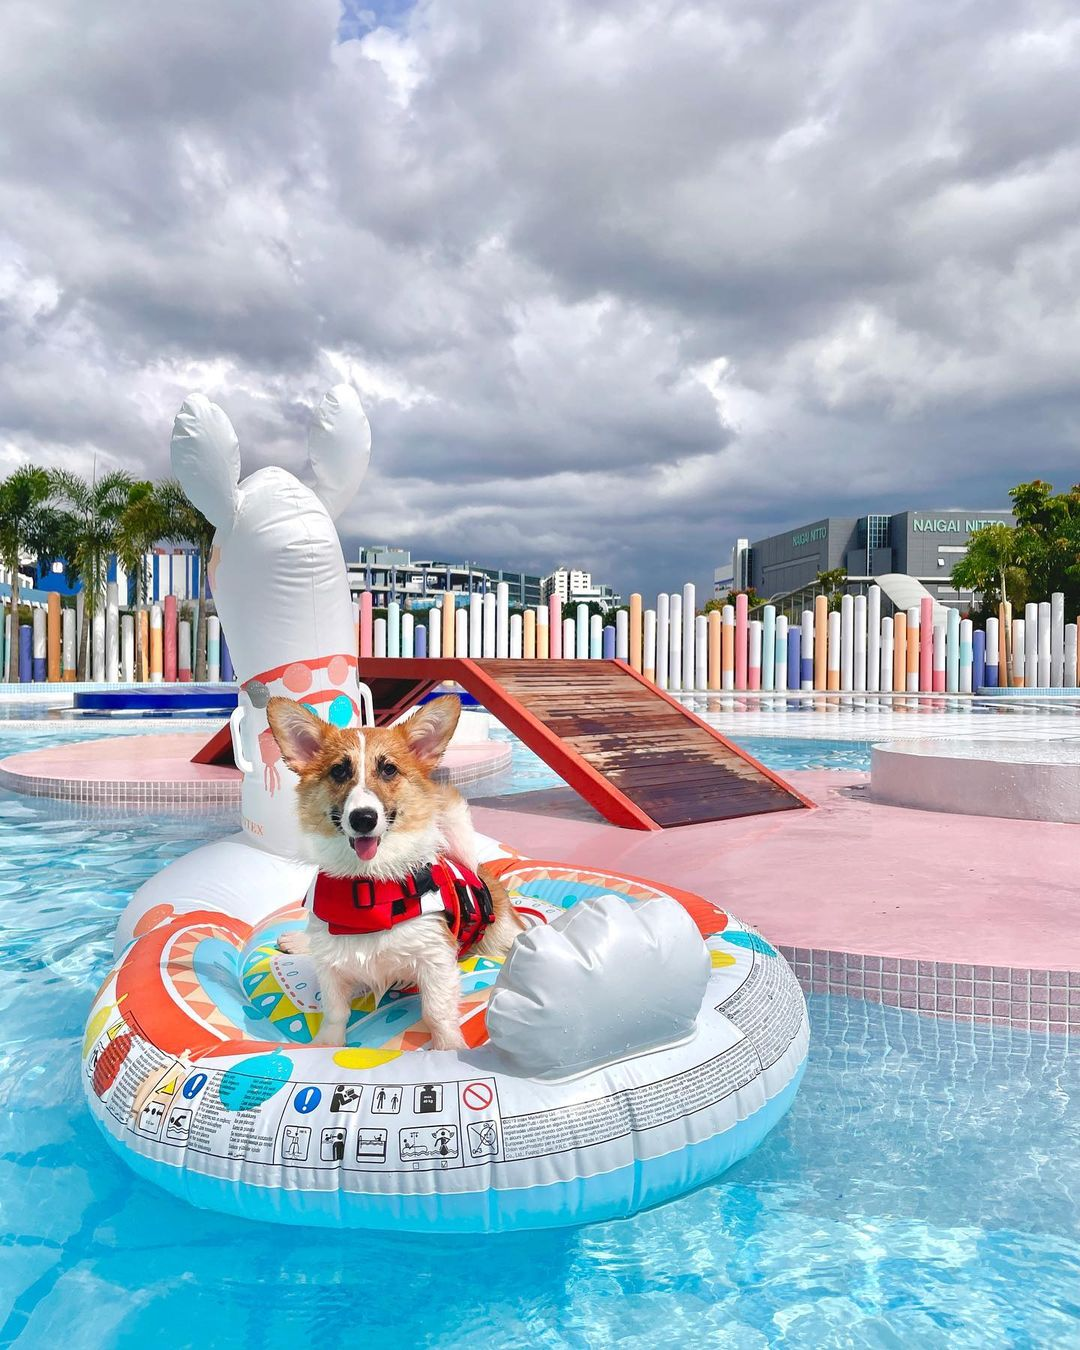 Wag & Wild Dog Waterpark - Things to do in January 2021